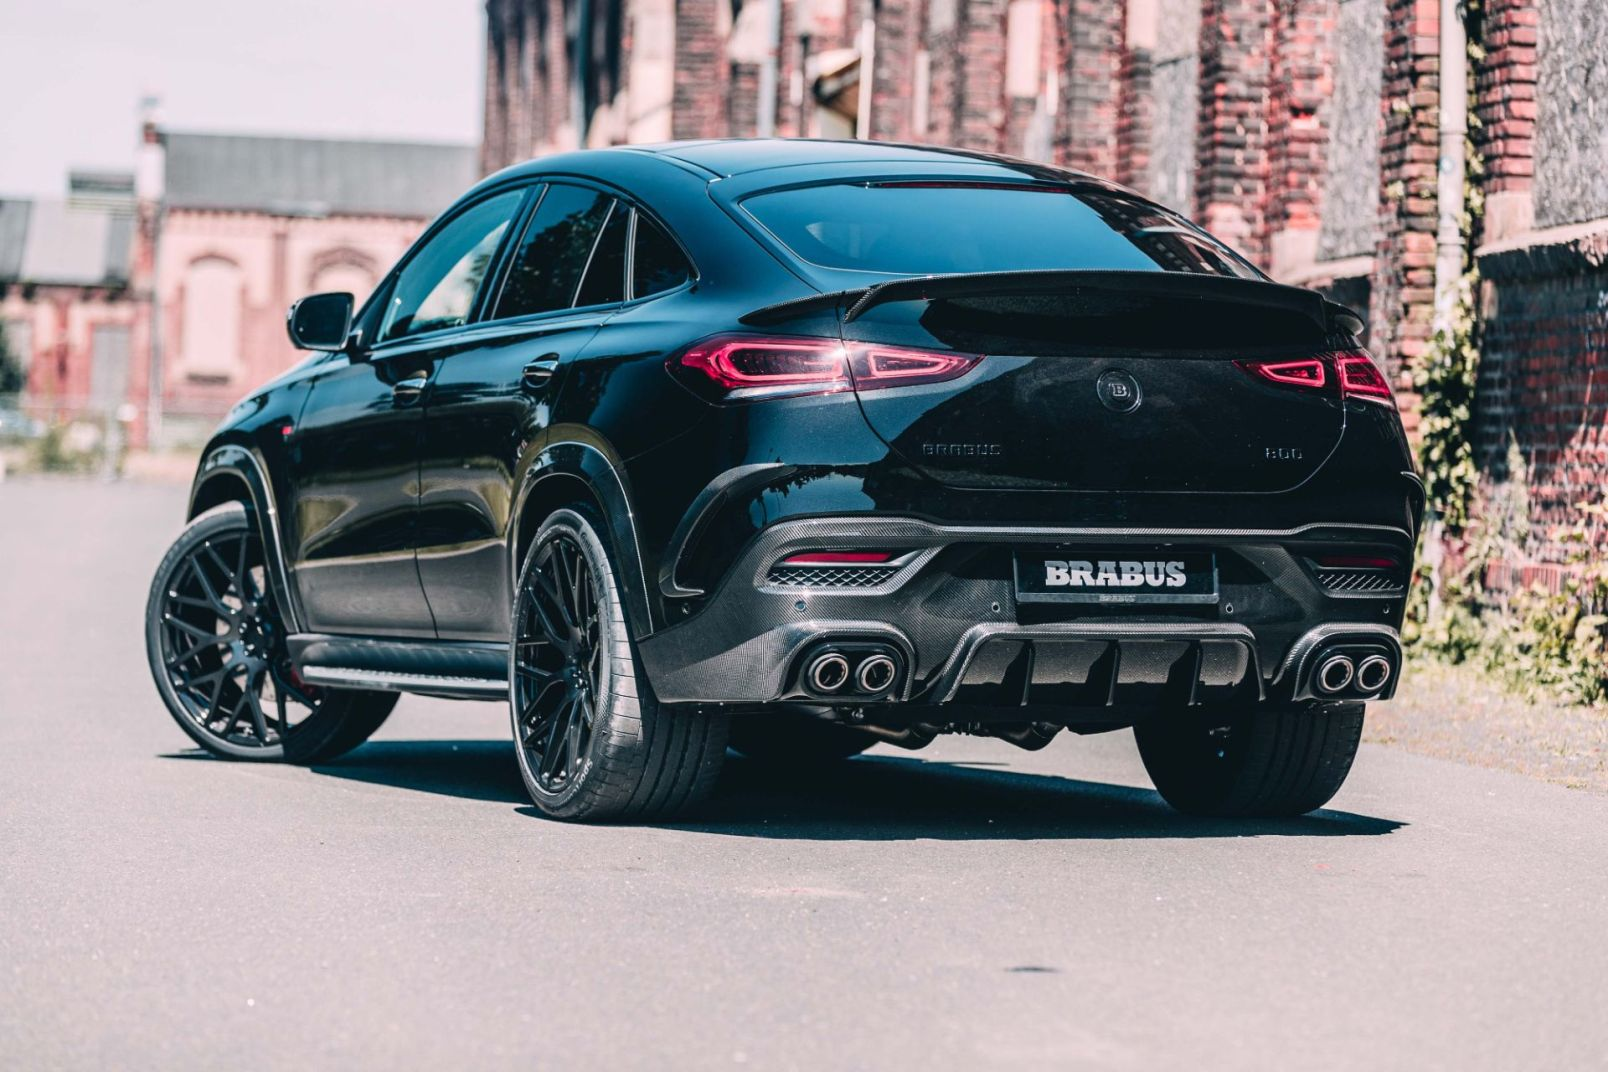 Brabus 800 Mercedes Amg Gle 63 S 4matic Coupe 22 (6)